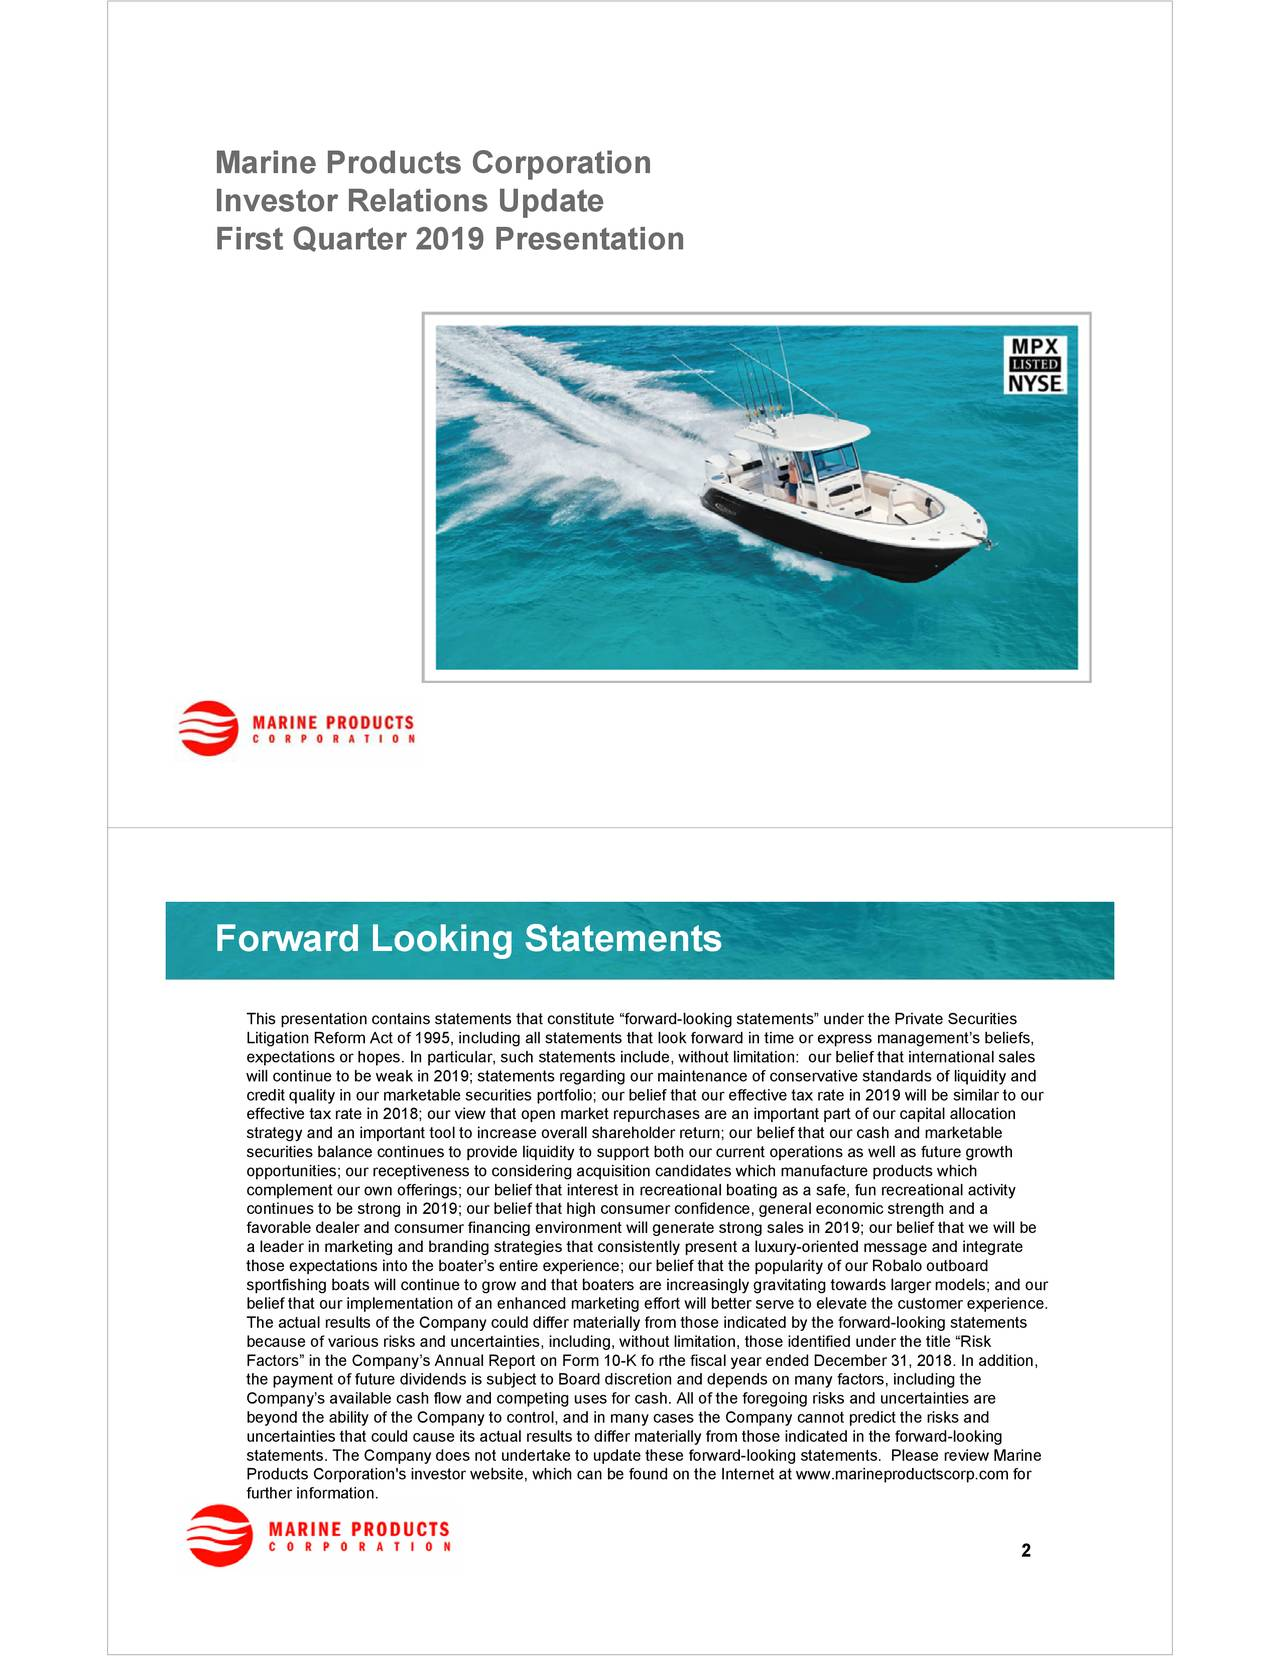 "Investor Relations Update First Quarter 2019 Presentation Forward Looking Statements This presentation contains statements that constitute ""forward-looking statements"" under the Private Securities Litigation Reform Act of 1995, including all statements that look forward in time or express management's beliefs, expectations or hopes. In particular, such statements include, without limitation: our belief that international sales will continue to be weak in 2019; statements regarding our maintenance of conservative standards of liquidity and credit quality in our marketable securities portfolio; our belief that our effective tax rate in 2019 will be similar to our effective tax rate in 2018; our view that open market repurchases are an important part of our capital allocation strategy and an important tool to increase overall shareholder return; our belief that our cash and marketable securities balance continues to provide liquidity to support both our current operations as well as future growth opportunities; our receptiveness to considering acquisition candidates which manufacture products which complement our own offerings; our belief that interest in recreational boating as a safe, fun recreational activity continues to be strong in 2019; our belief that high consumer confidence, general economic strength and a favorable dealer and consumer financing environment will generate strong sales in 2019; our belief that we will be a leader in marketing and branding strategies that consistently present a luxury-oriented message and integrate those expectations into the boater's entire experience; our belief that the popularity of our Robalo outboard sportfishing boats will continue to grow and that boaters are increasingly gravitating towards larger models; and our belief that our implementation of an enhanced marketing effort will better serve to elevate the customer experience. The actual results of the Company could differ materially from those indicated by the forward-looking statements because of various risks and uncertainties, including, without limitation, those identified under the title ""Risk Factors"" in the Company's Annual Report on Form 10-K fo rthe fiscal year ended December 31, 2018. In addition, the payment of future dividends is subject to Board discretion and depends on many factors, including the Company's available cash flow and competing uses for cash. All of the foregoing risks and uncertainties are beyond the ability of the Company to control, and in many cases the Company cannot predict the risks and uncertainties that could cause its actual results to differ materially from those indicated in the forward-looking statements. The Company does not undertake to update these forward-looking statements. Please review Marine Products Corporation's investor website, which can be found on the Internet at www.marineproductscorp.com for further information. 2"